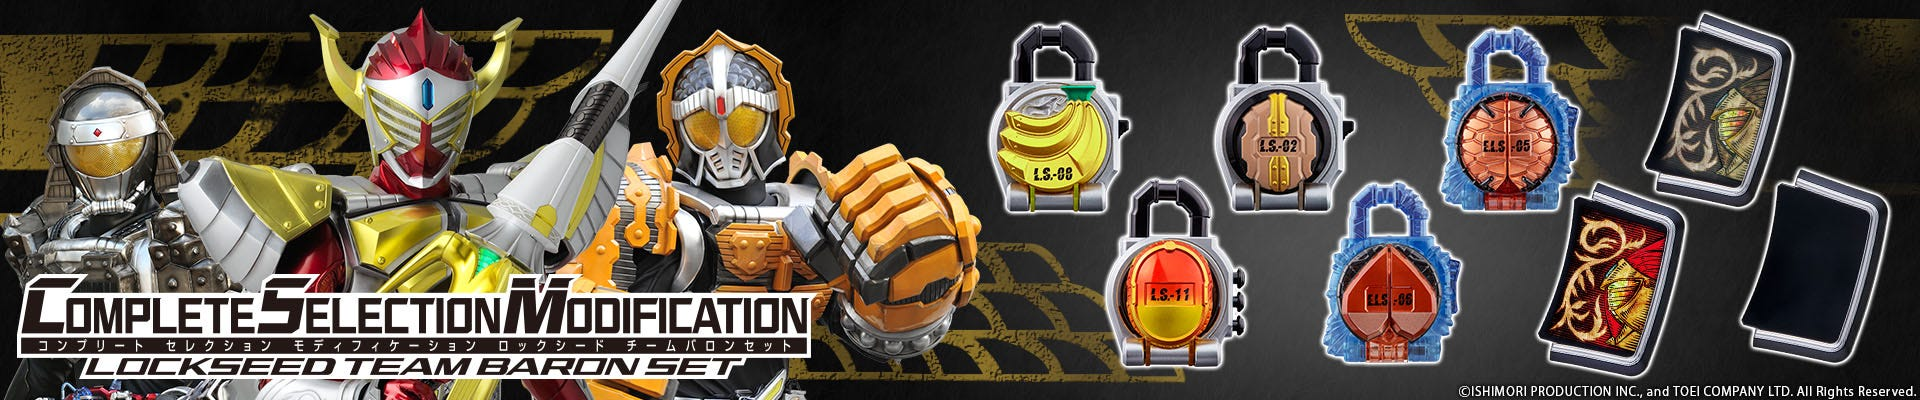 Kamen Rider Belts Coming 2021